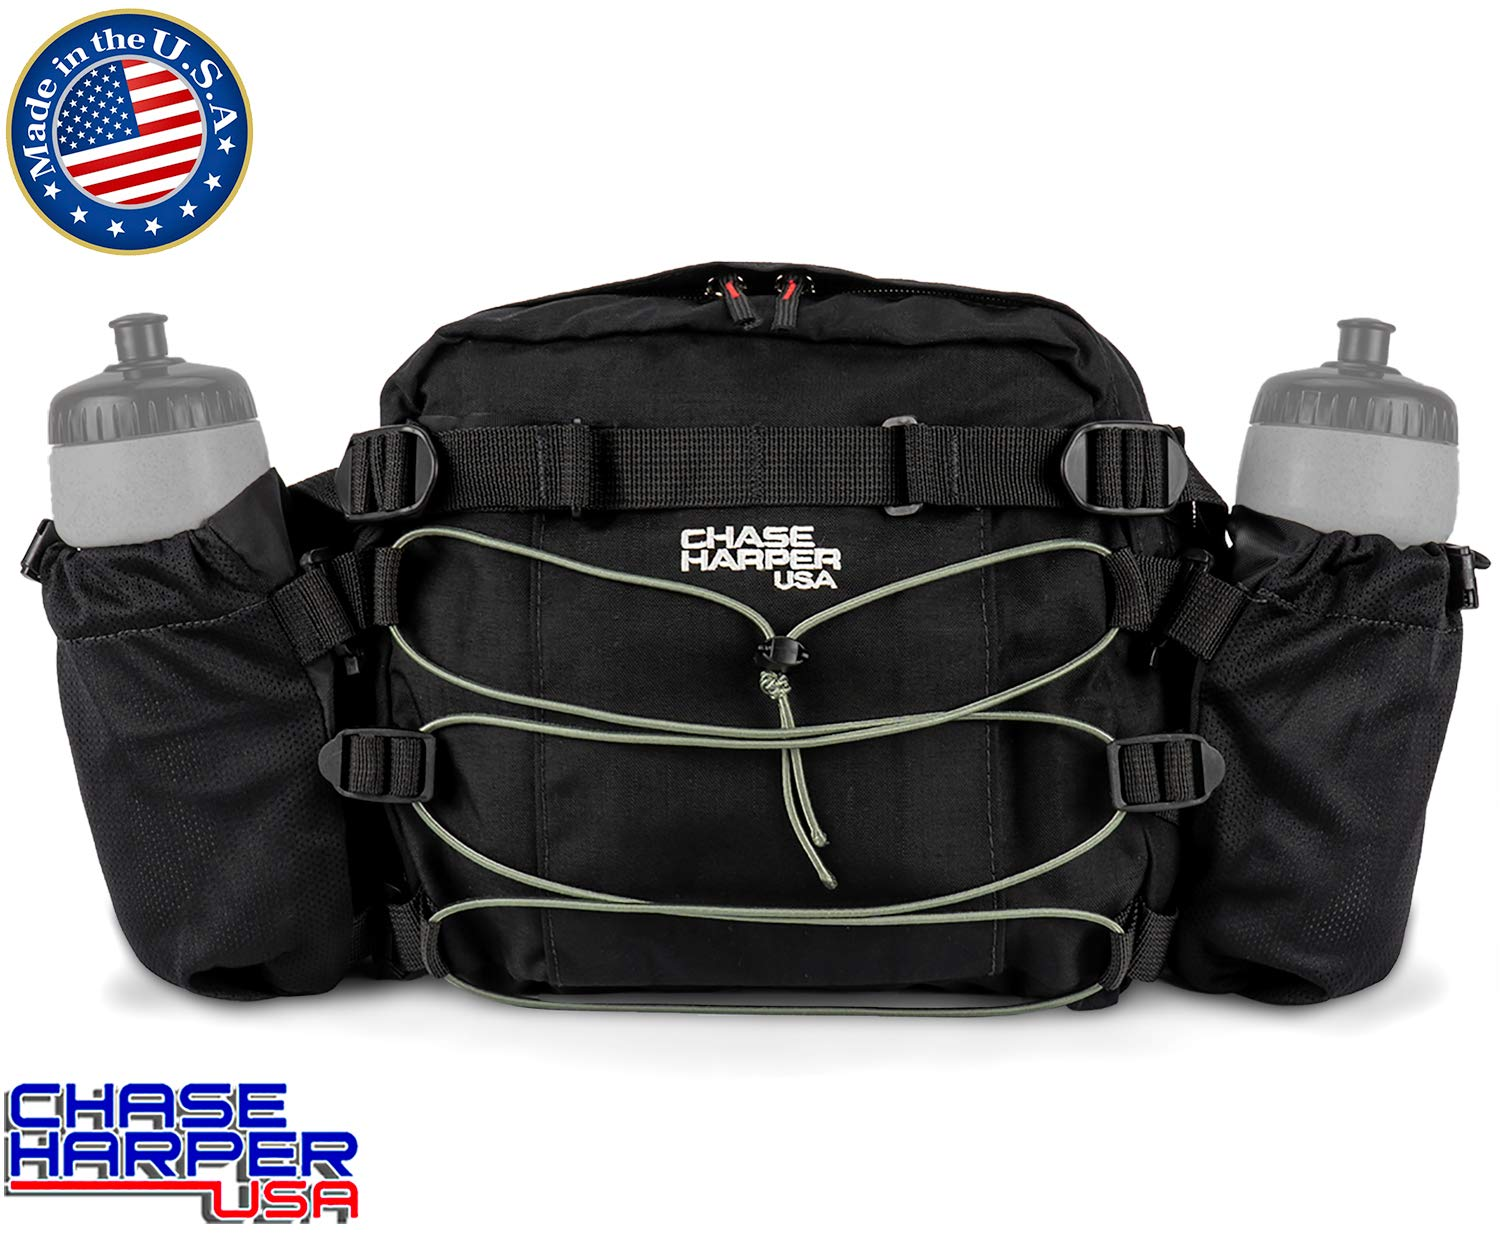 Chase Harper 9344 Sport Tour H2O Fanny Pack - Water-Resistant, Tear-Resistant, Industrial Grade Nylon